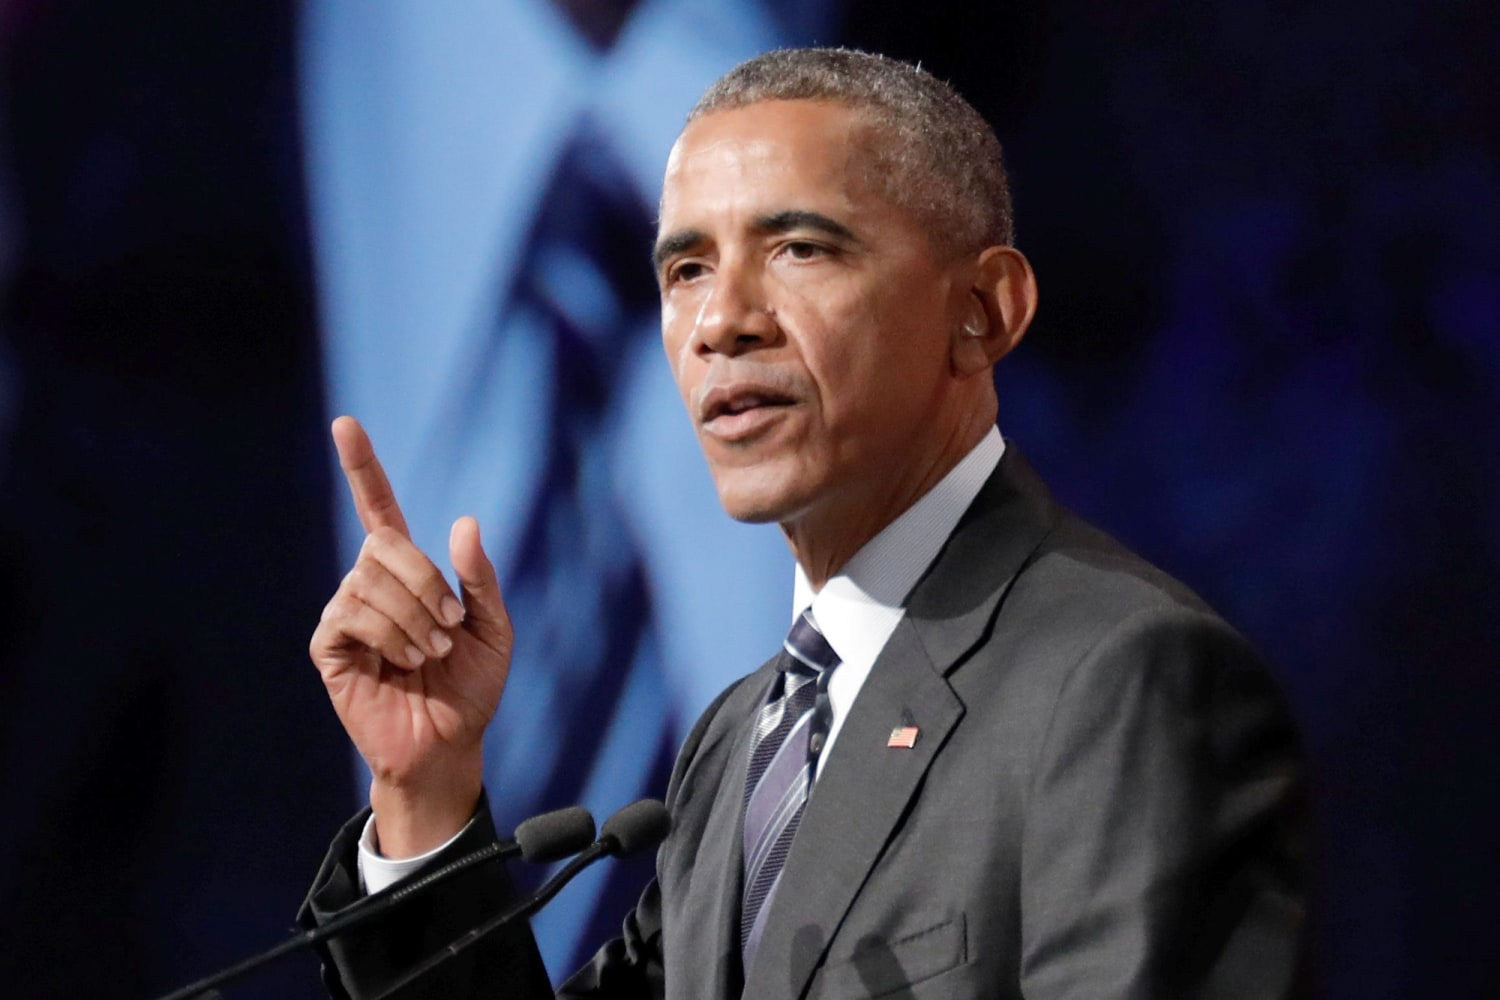 Obama Warns Against Income Inequality While Delivering ...